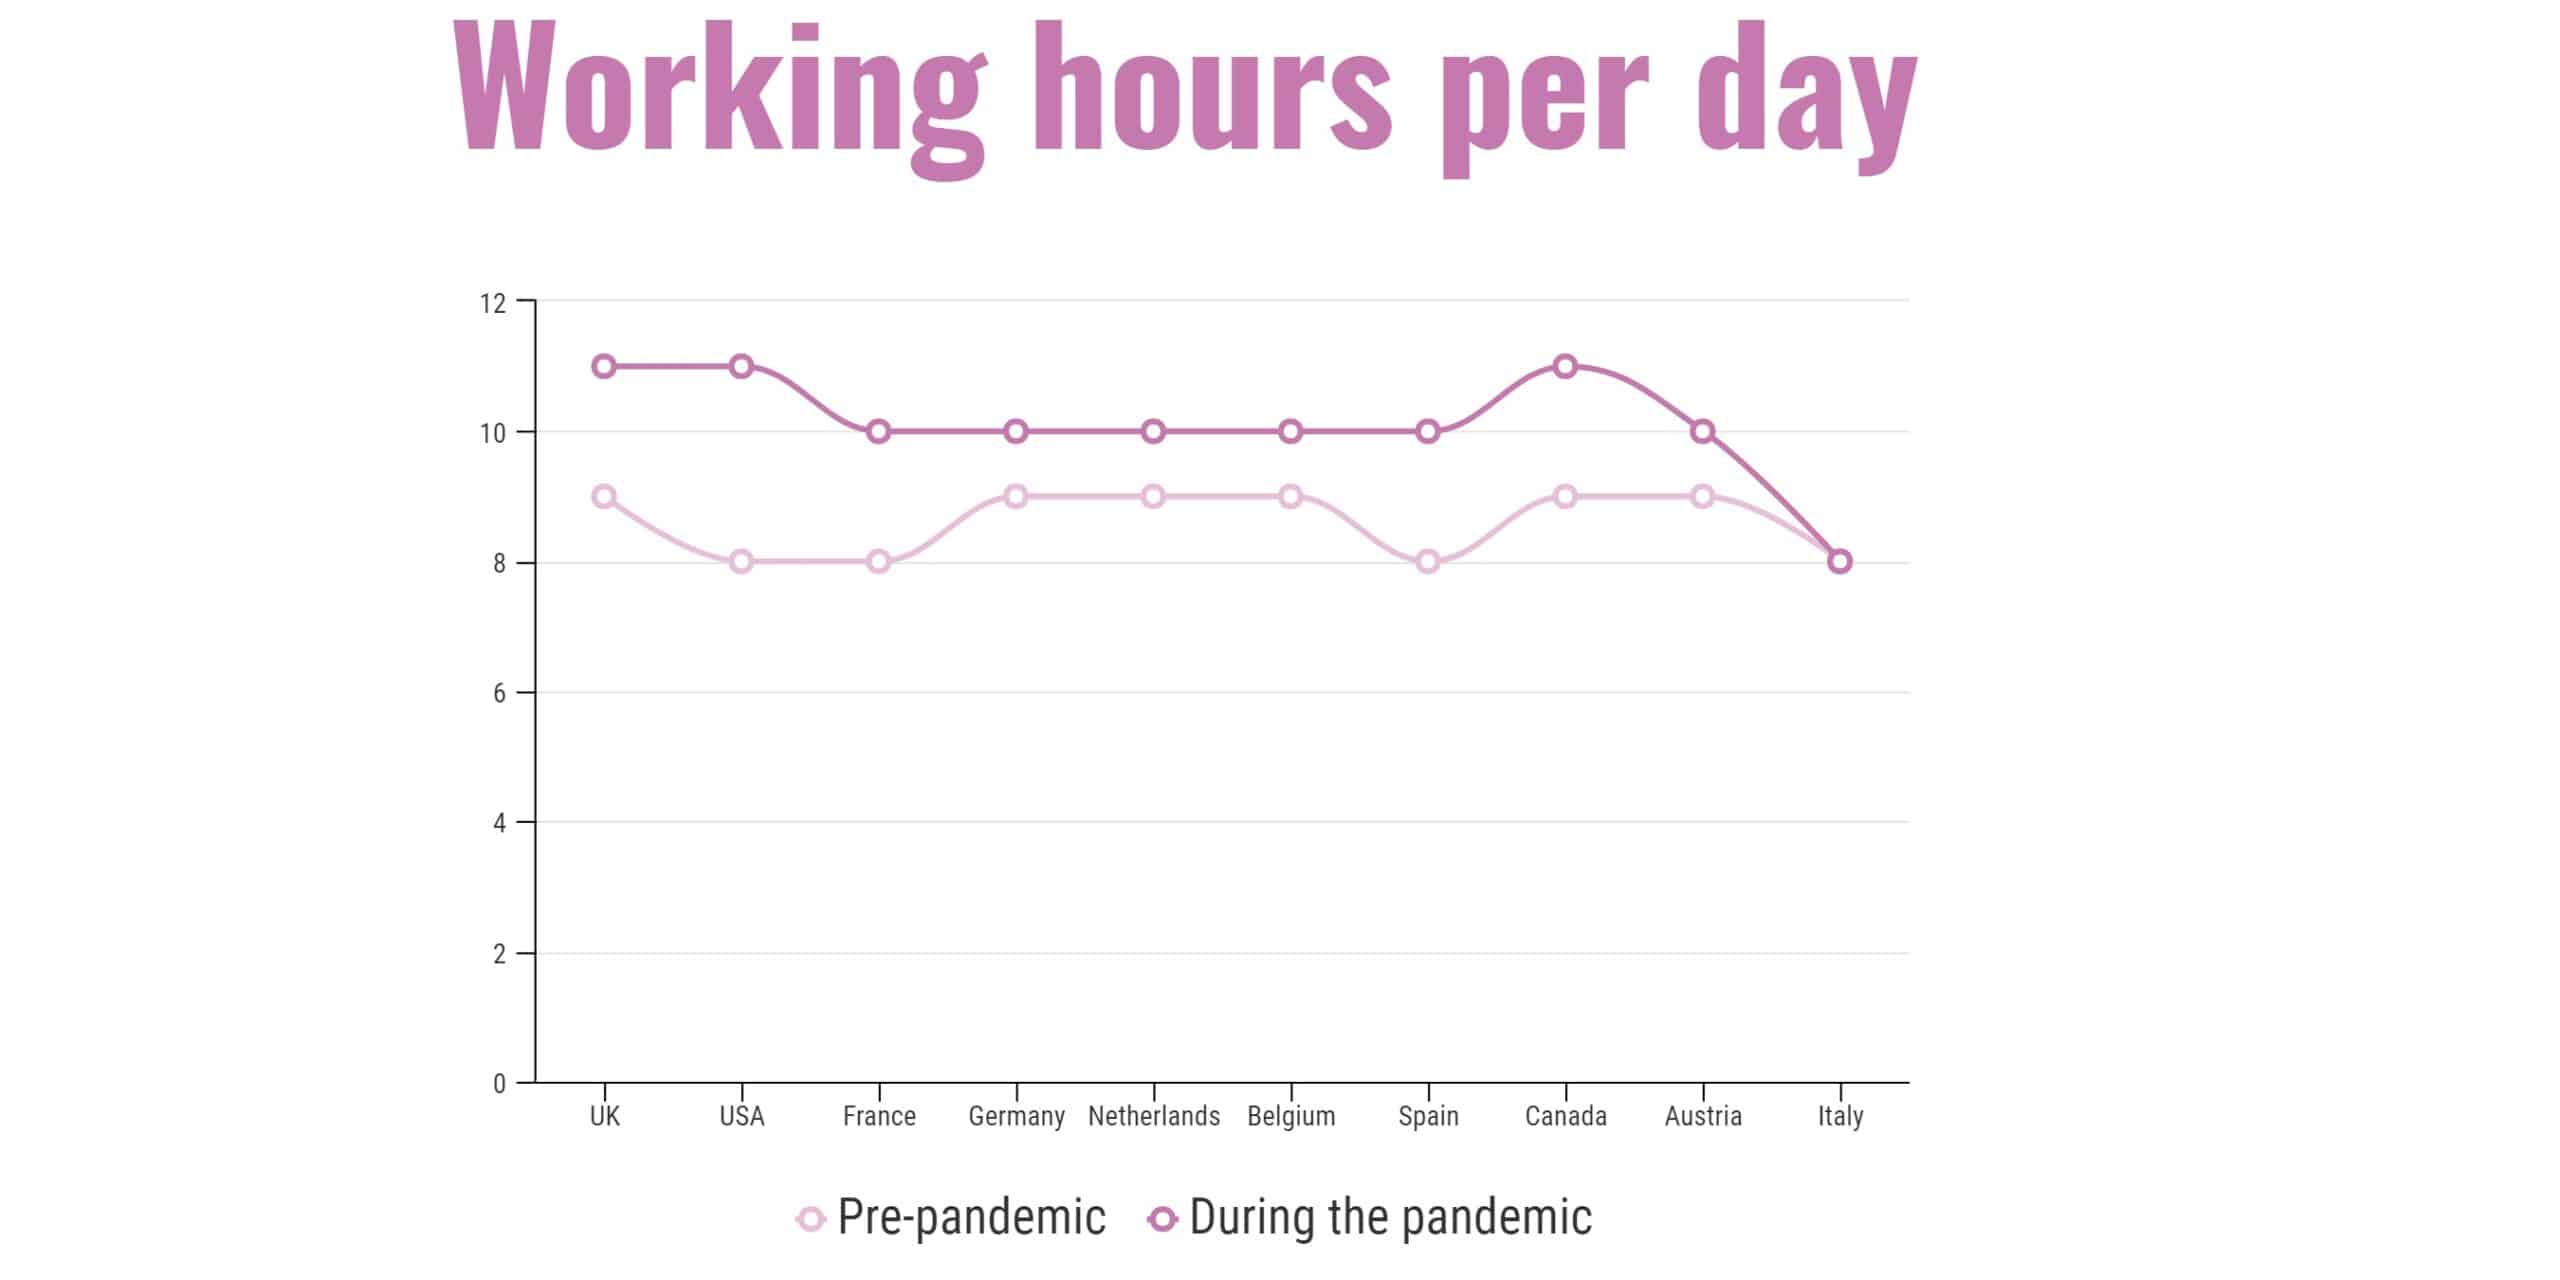 Working hours per day pandemic